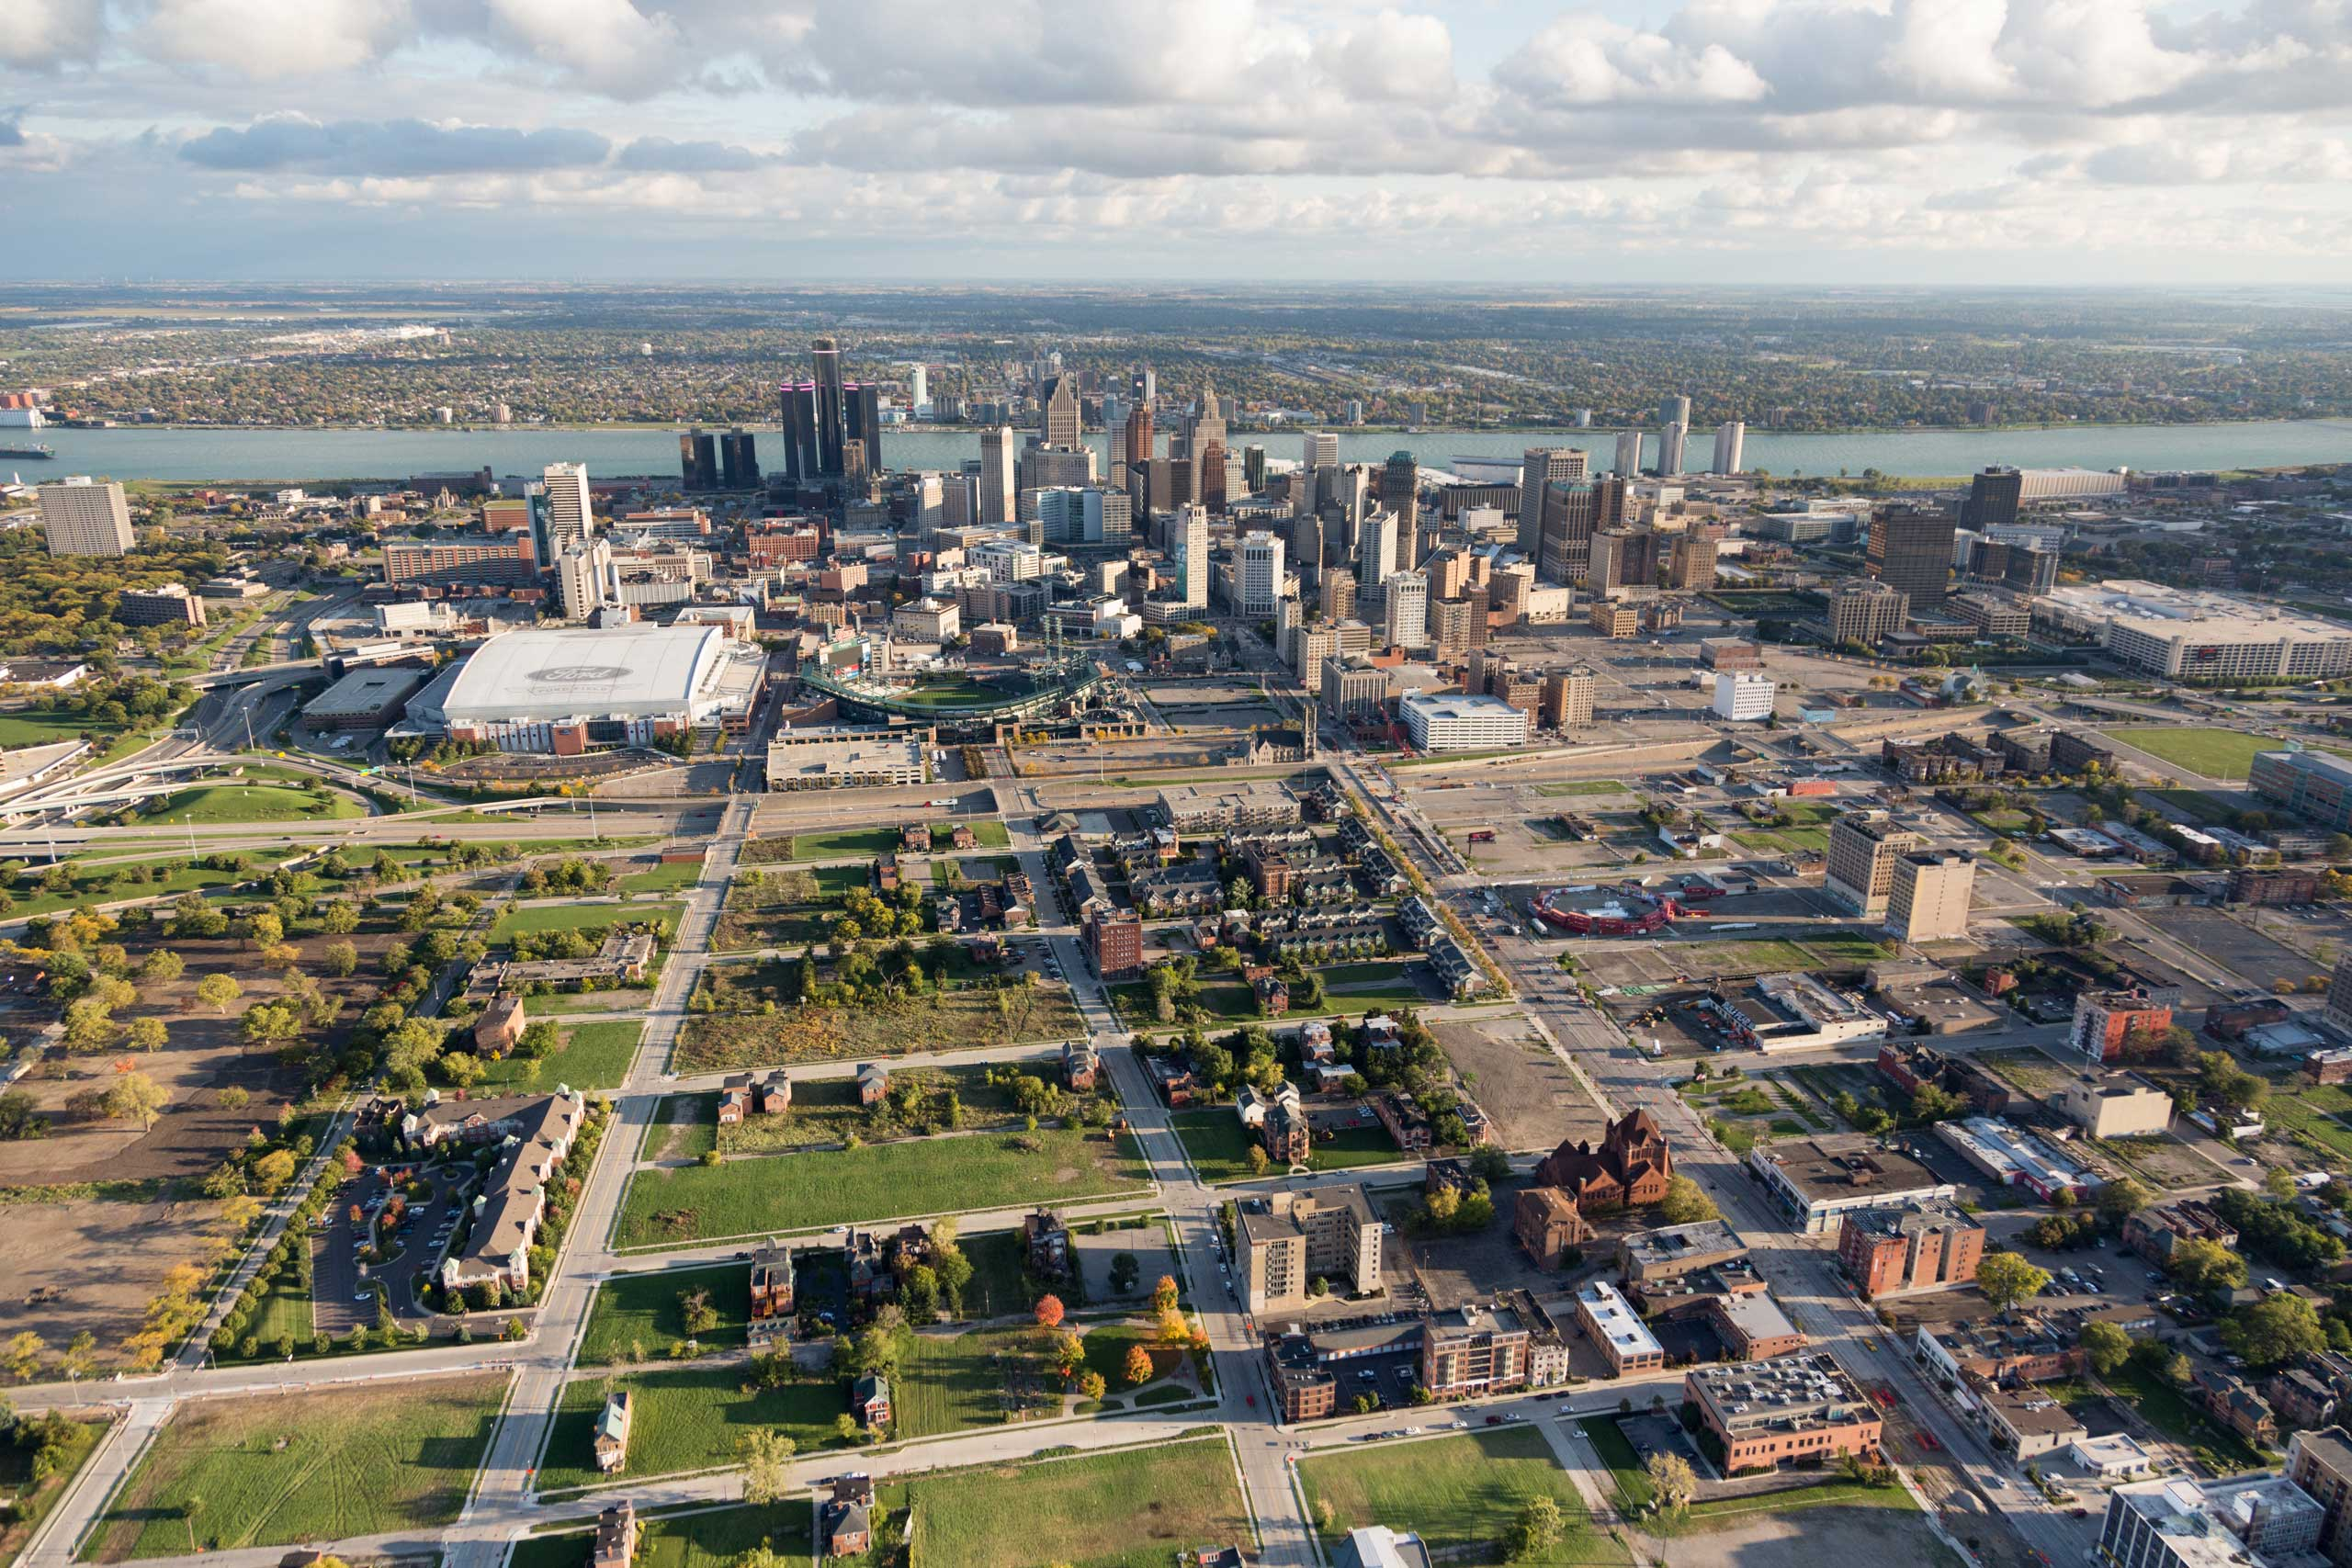 The New York Times: Detroit by AirAn overview of Brush Park and its proximity to downtown, including the Detroit River and Canada on the horizon. New housing developments begin to fill in along the edge of the neighborhood.